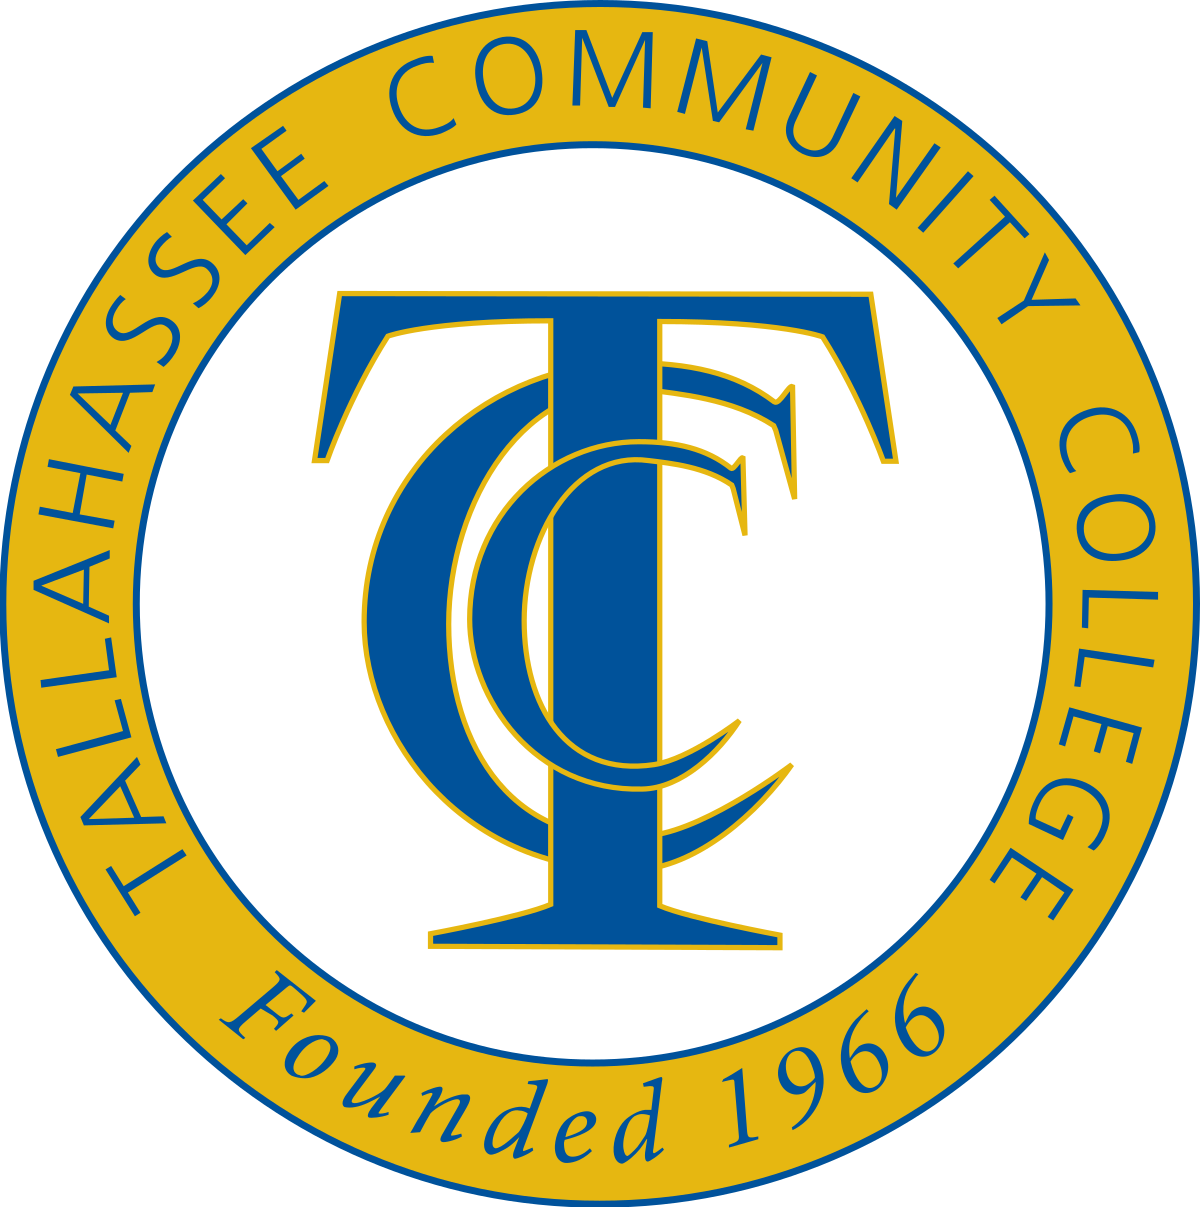 File:Tallahassee Community College.svg.